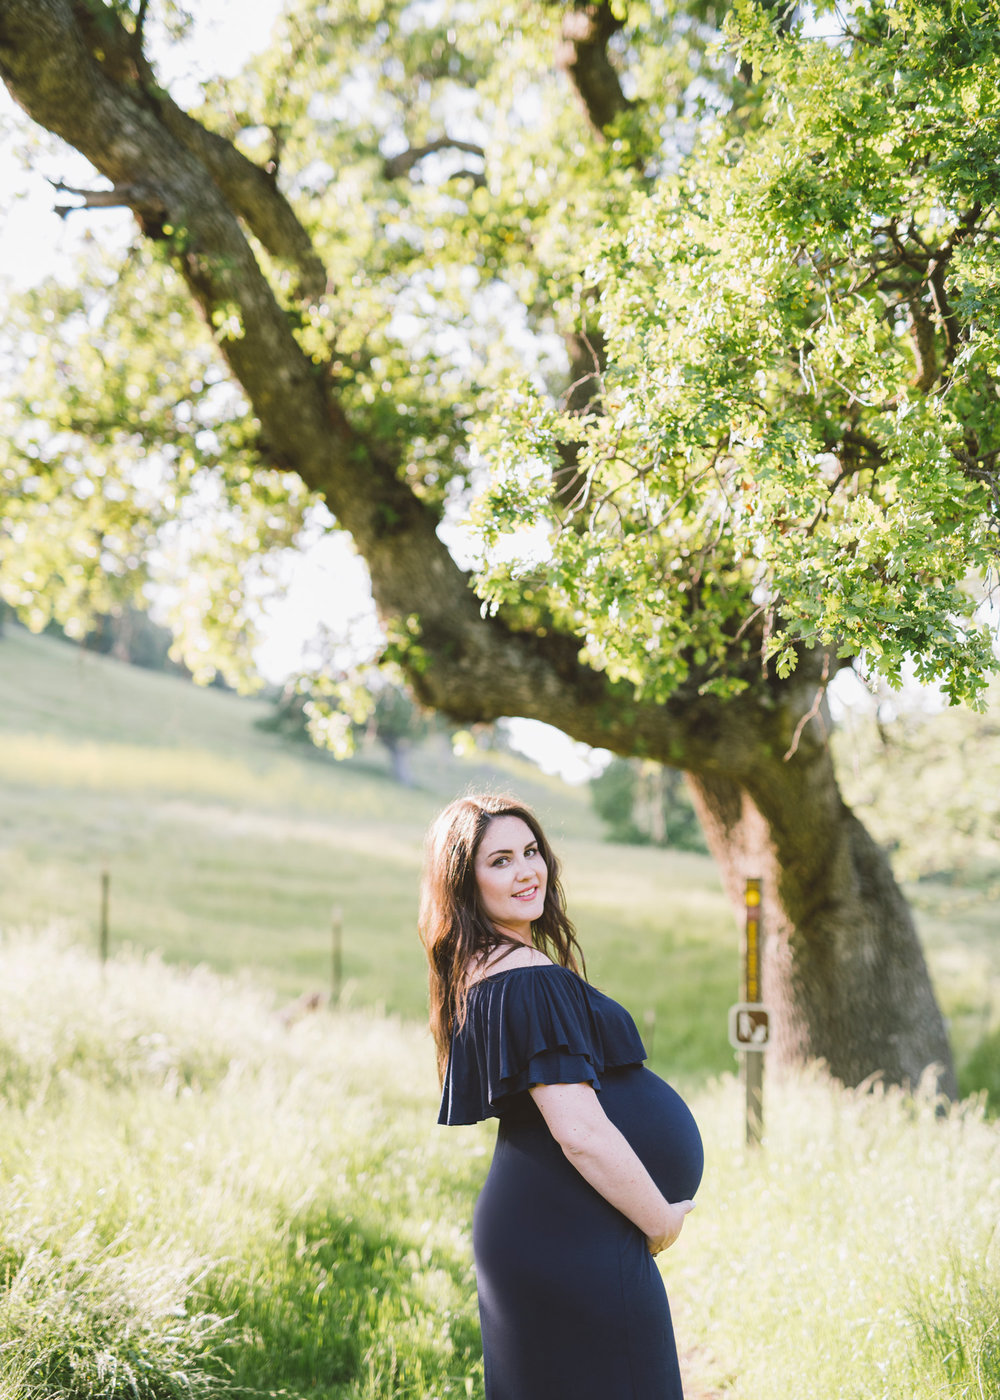 portrait-of-a-pregnant-woman-in-open-space-in-front-of-a-oak-tree.jpg